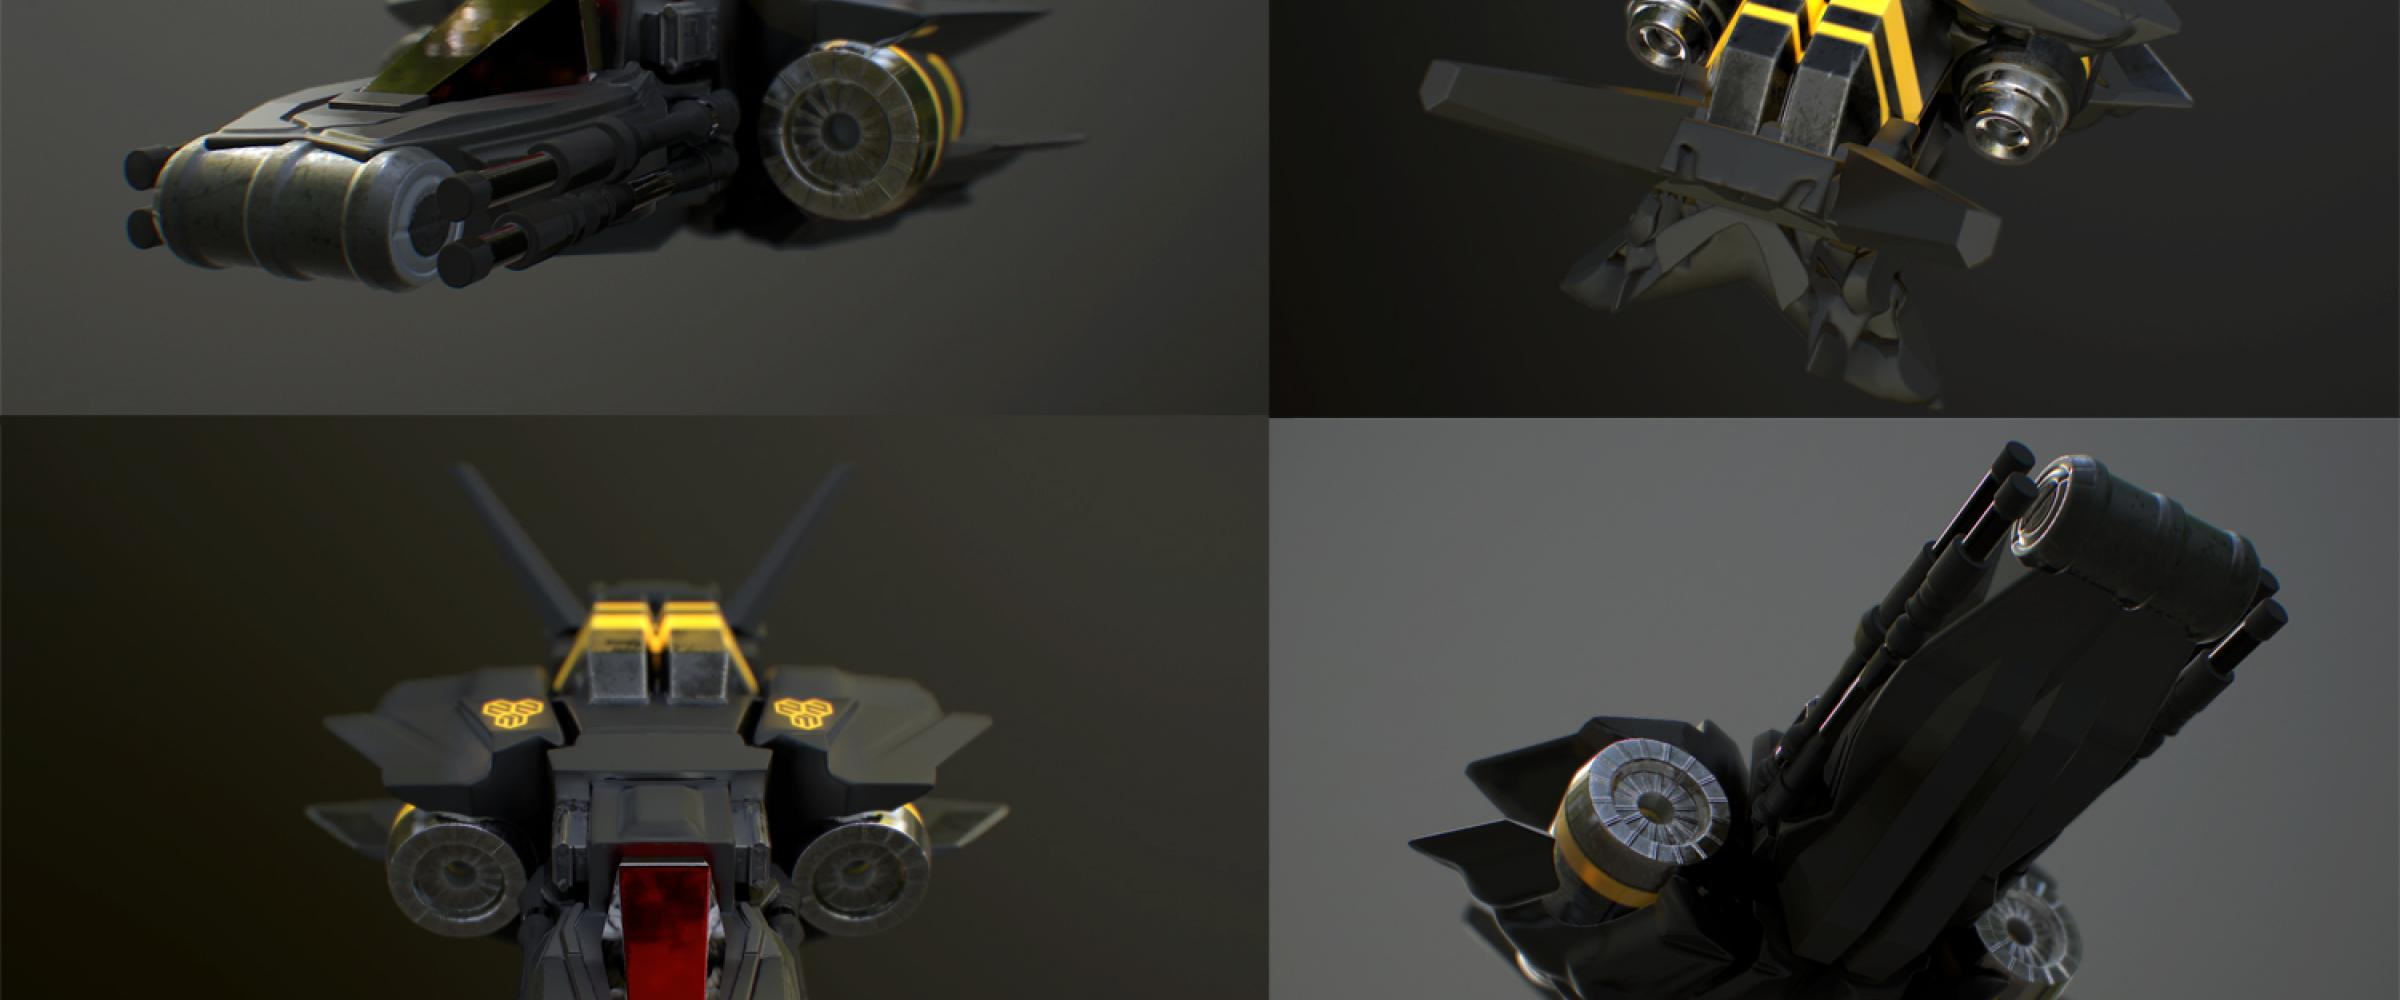 Hardsurface Sculpting | Learn Squared